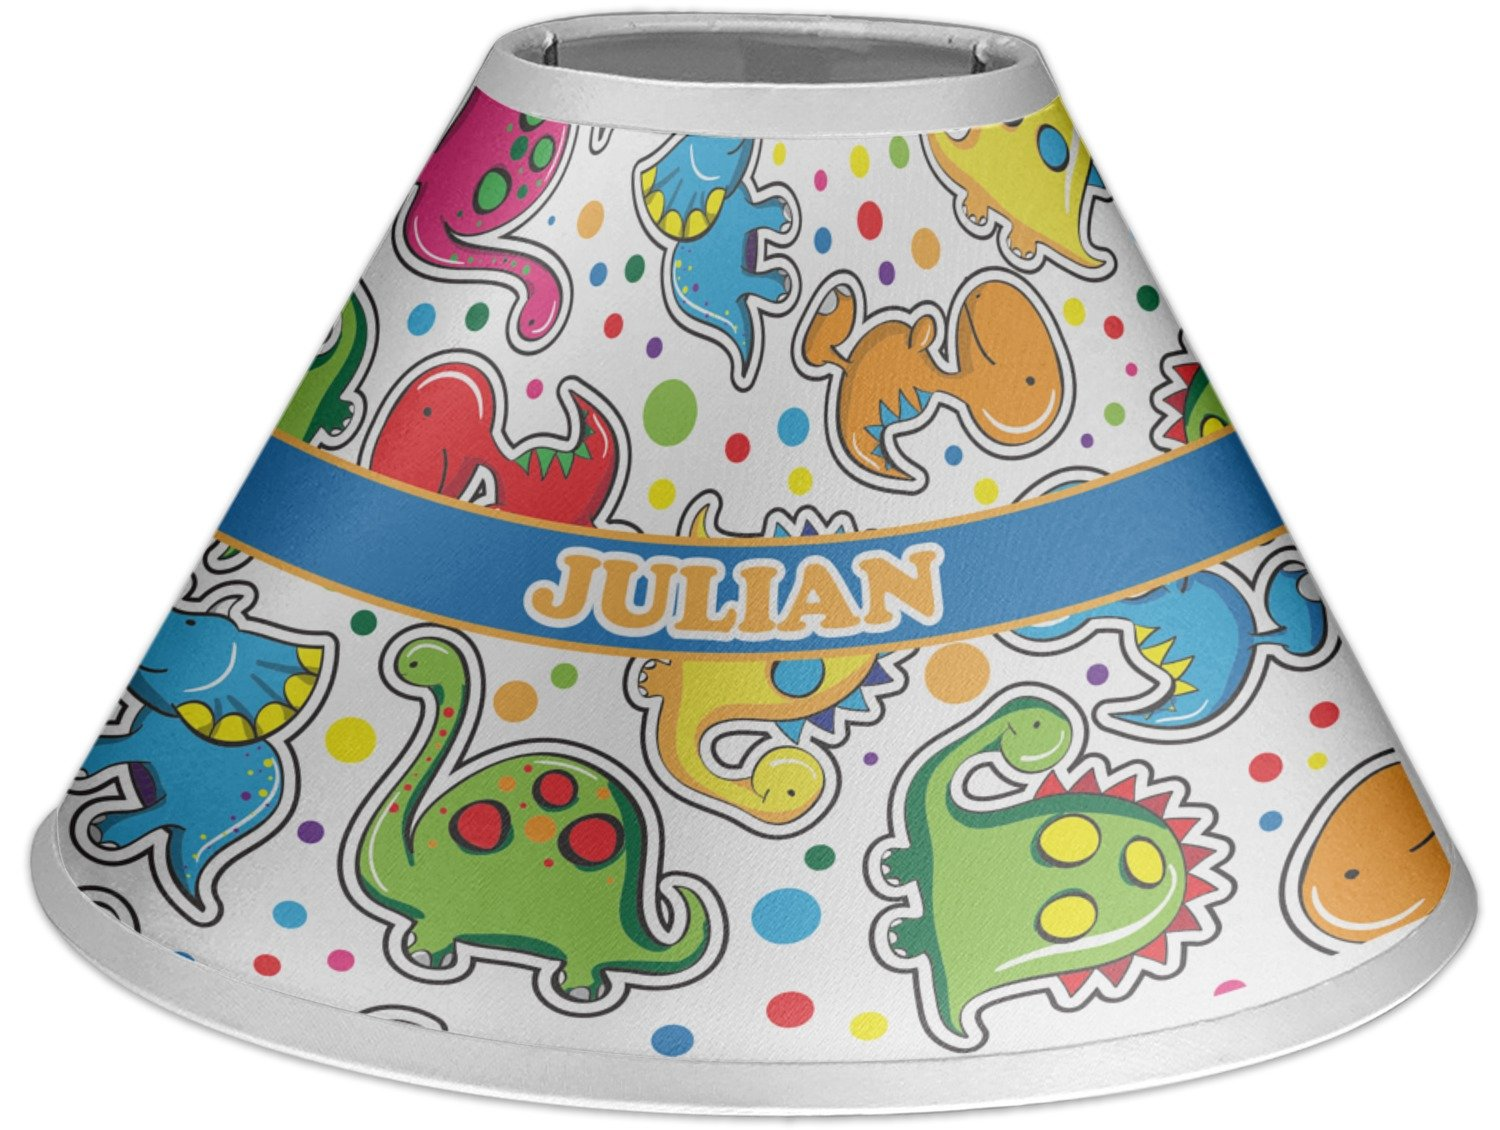 RNK Shops Dinosaur Print Coolie Lamp Shade (Personalized)